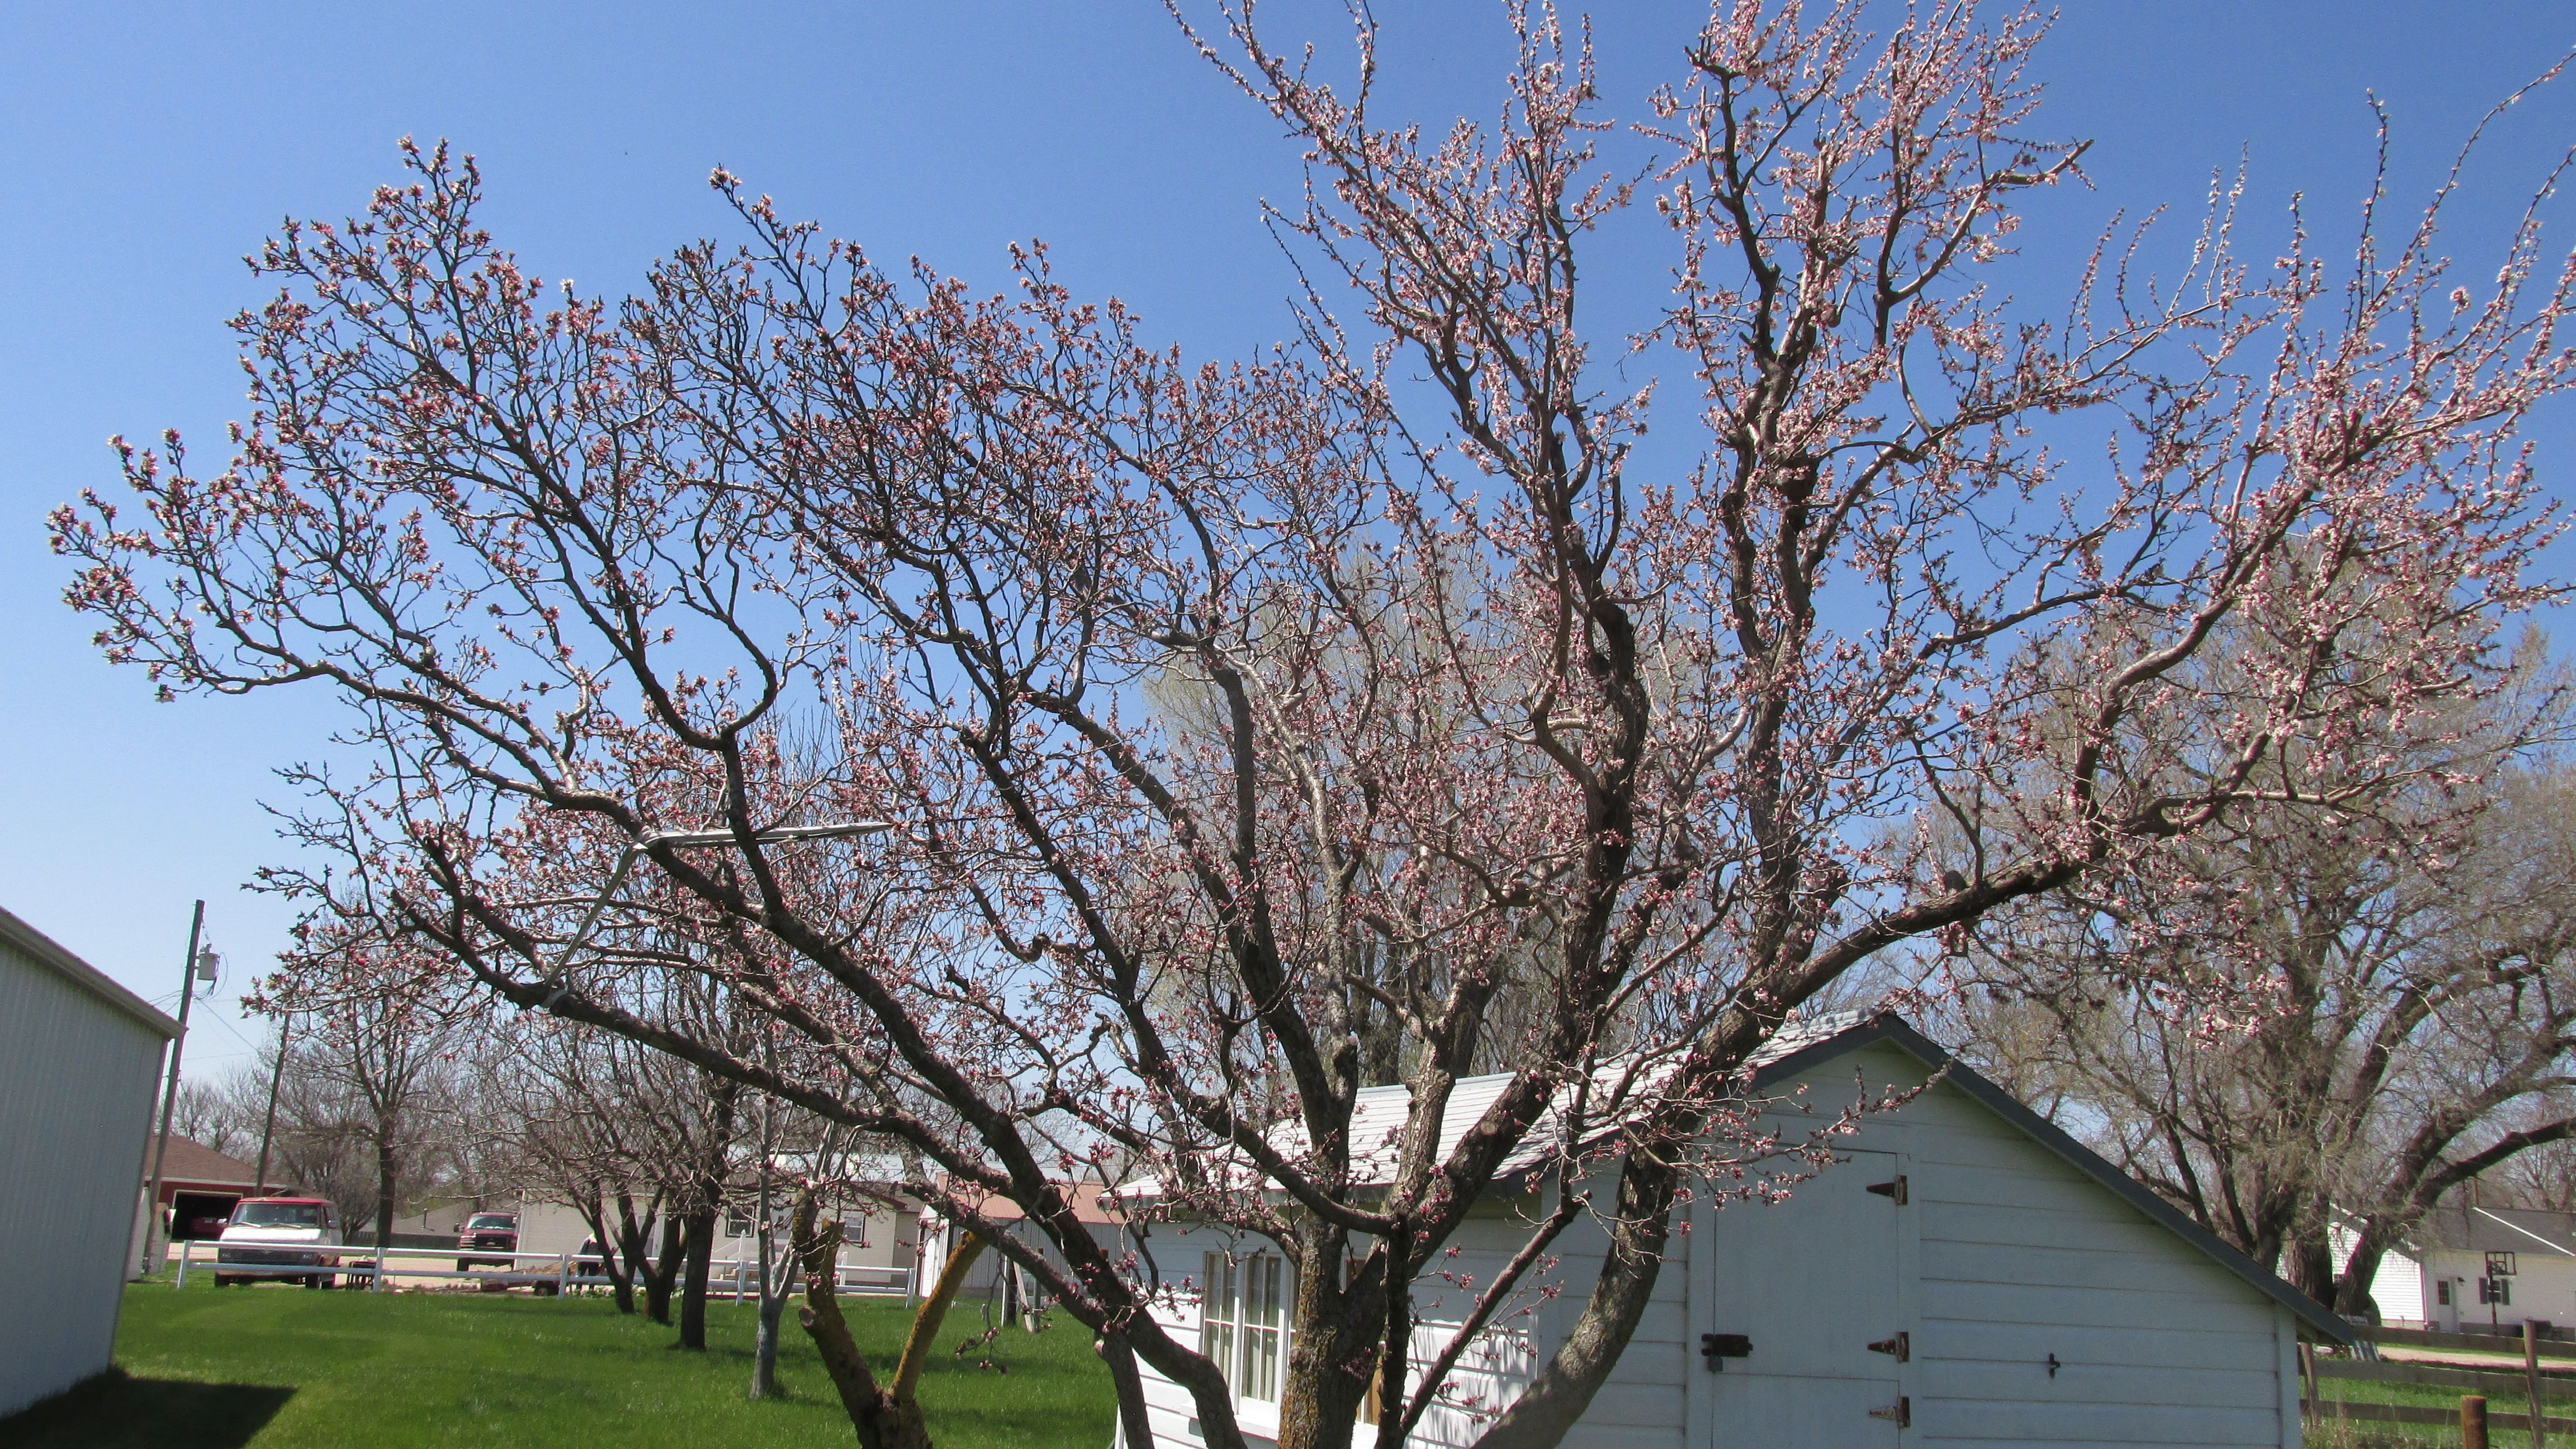 One of several fruit trees